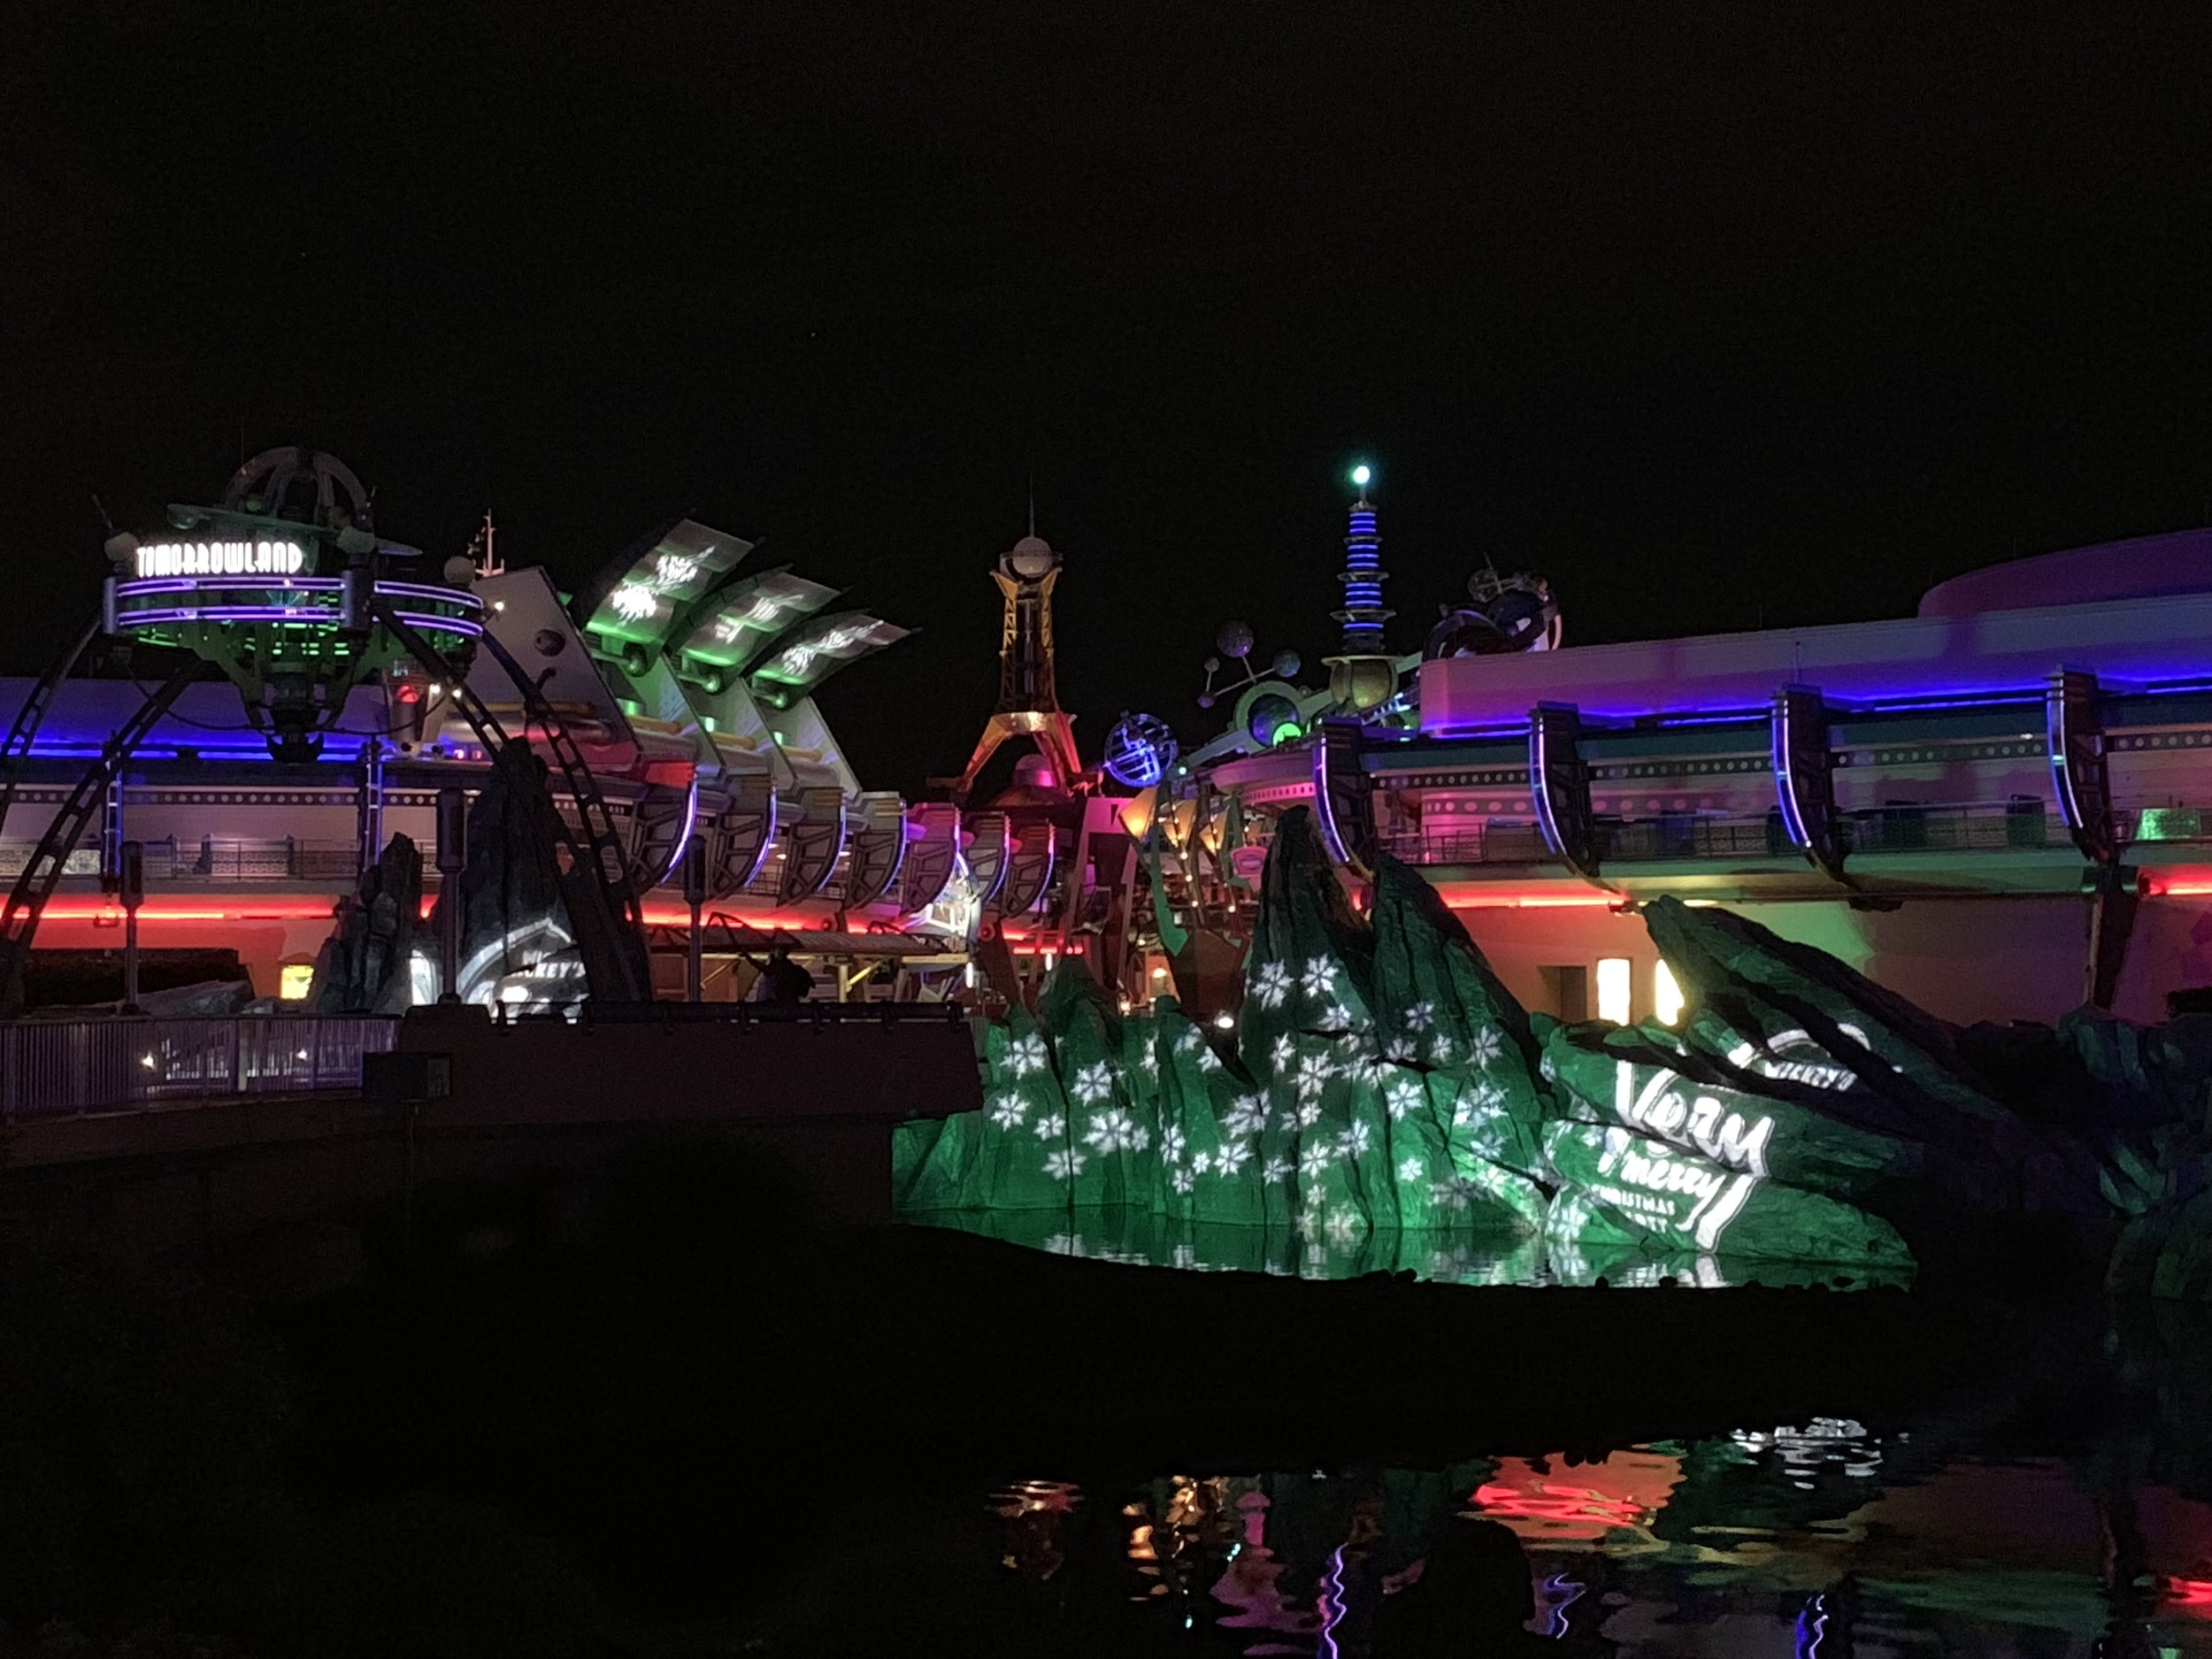 Loved how even Tomorrowland looked festive for the season!